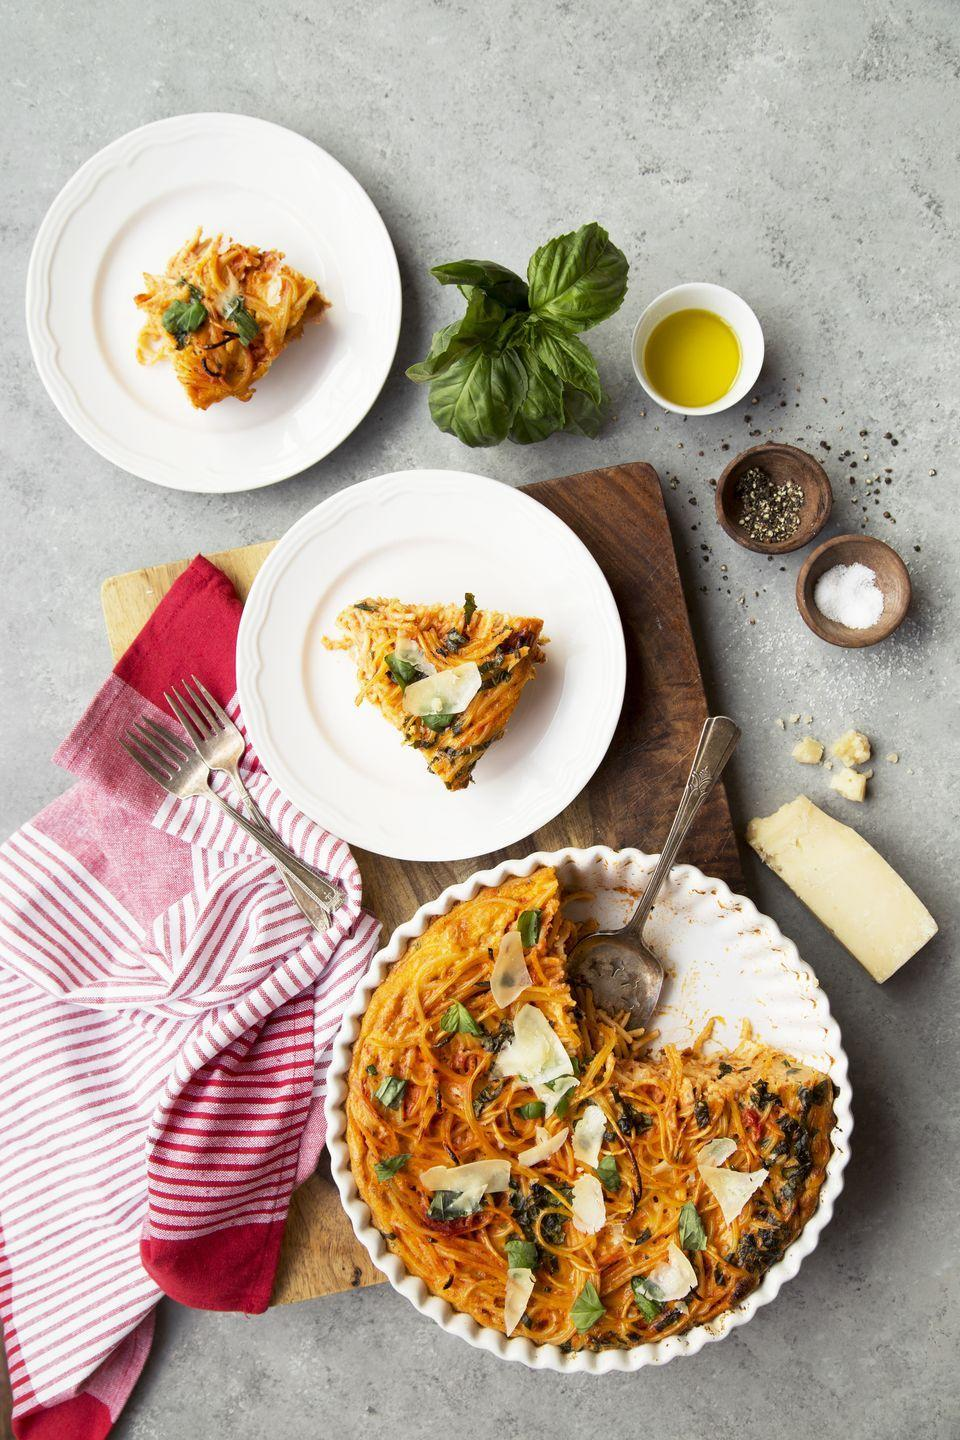 "<p>You'll never go back to a pastry crust after this one.</p><p>Get the recipe from <a href=""https://www.delish.com/cooking/recipe-ideas/recipes/a52307/spaghetti-quiche-recipe/"" rel=""nofollow noopener"" target=""_blank"" data-ylk=""slk:Delish"" class=""link rapid-noclick-resp"">Delish</a>.</p>"